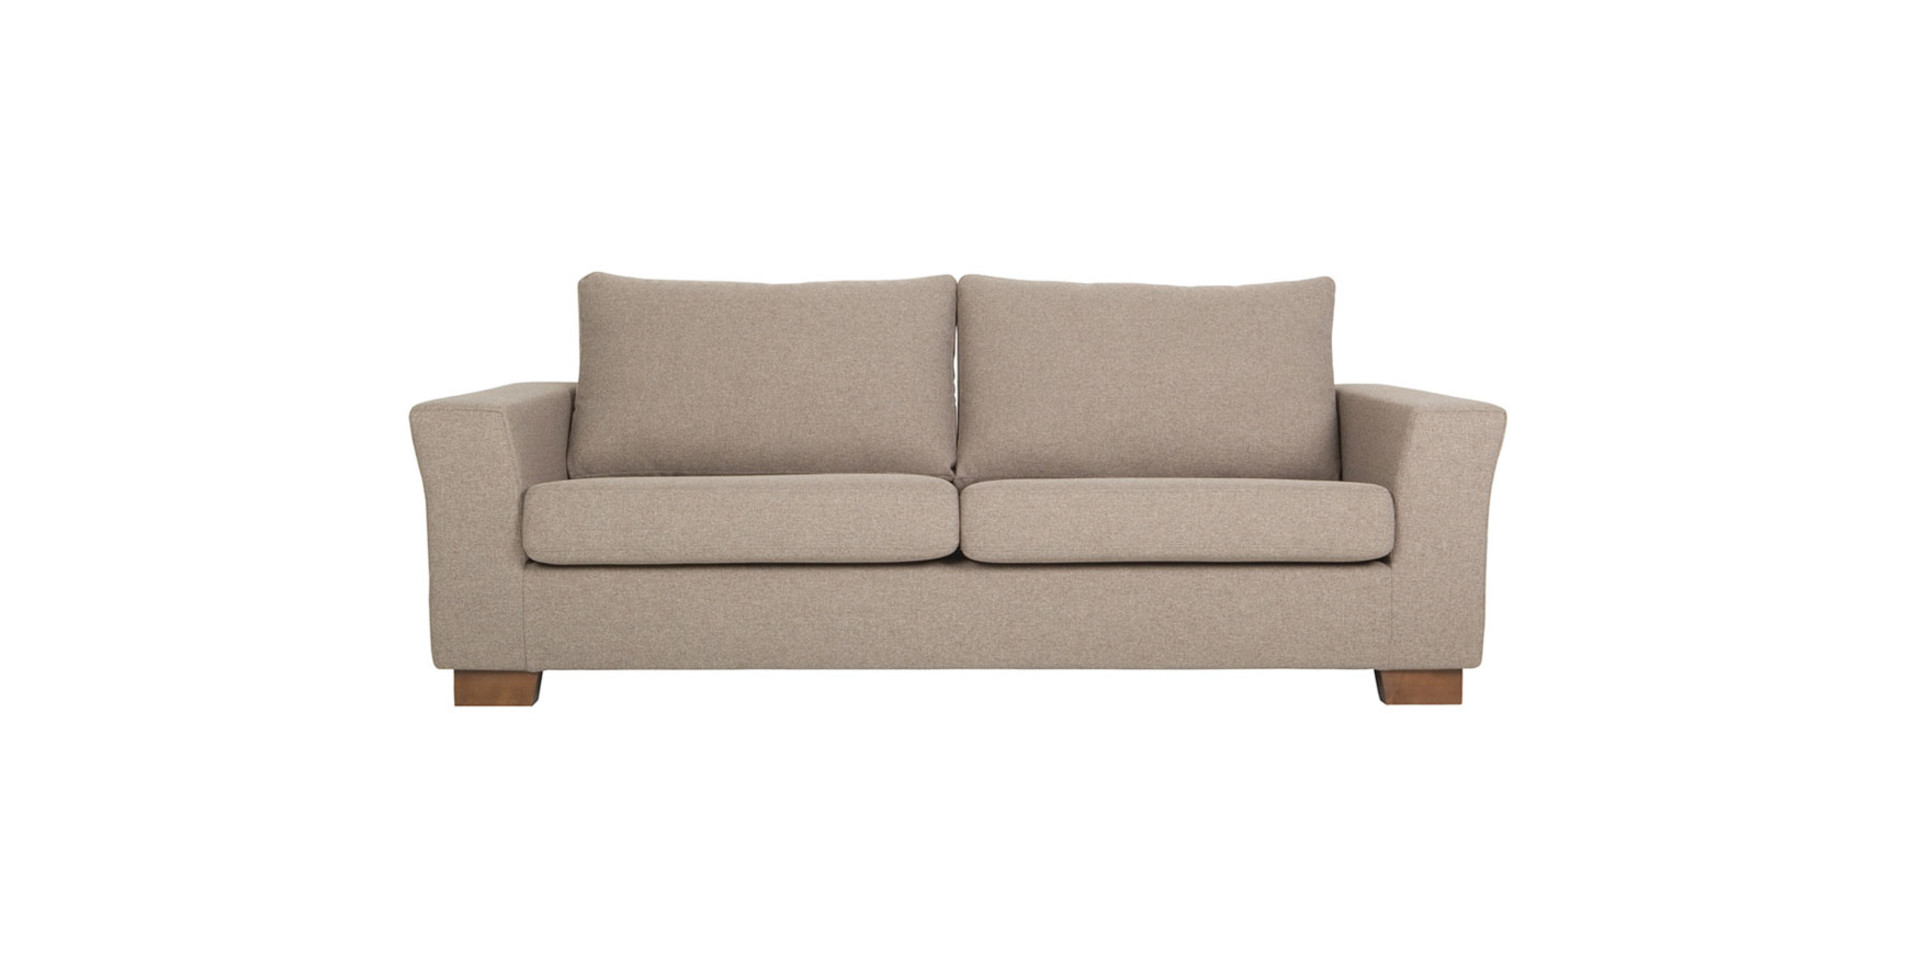 sits-jump-canape-3seater_pacaD8D8grey_1_0